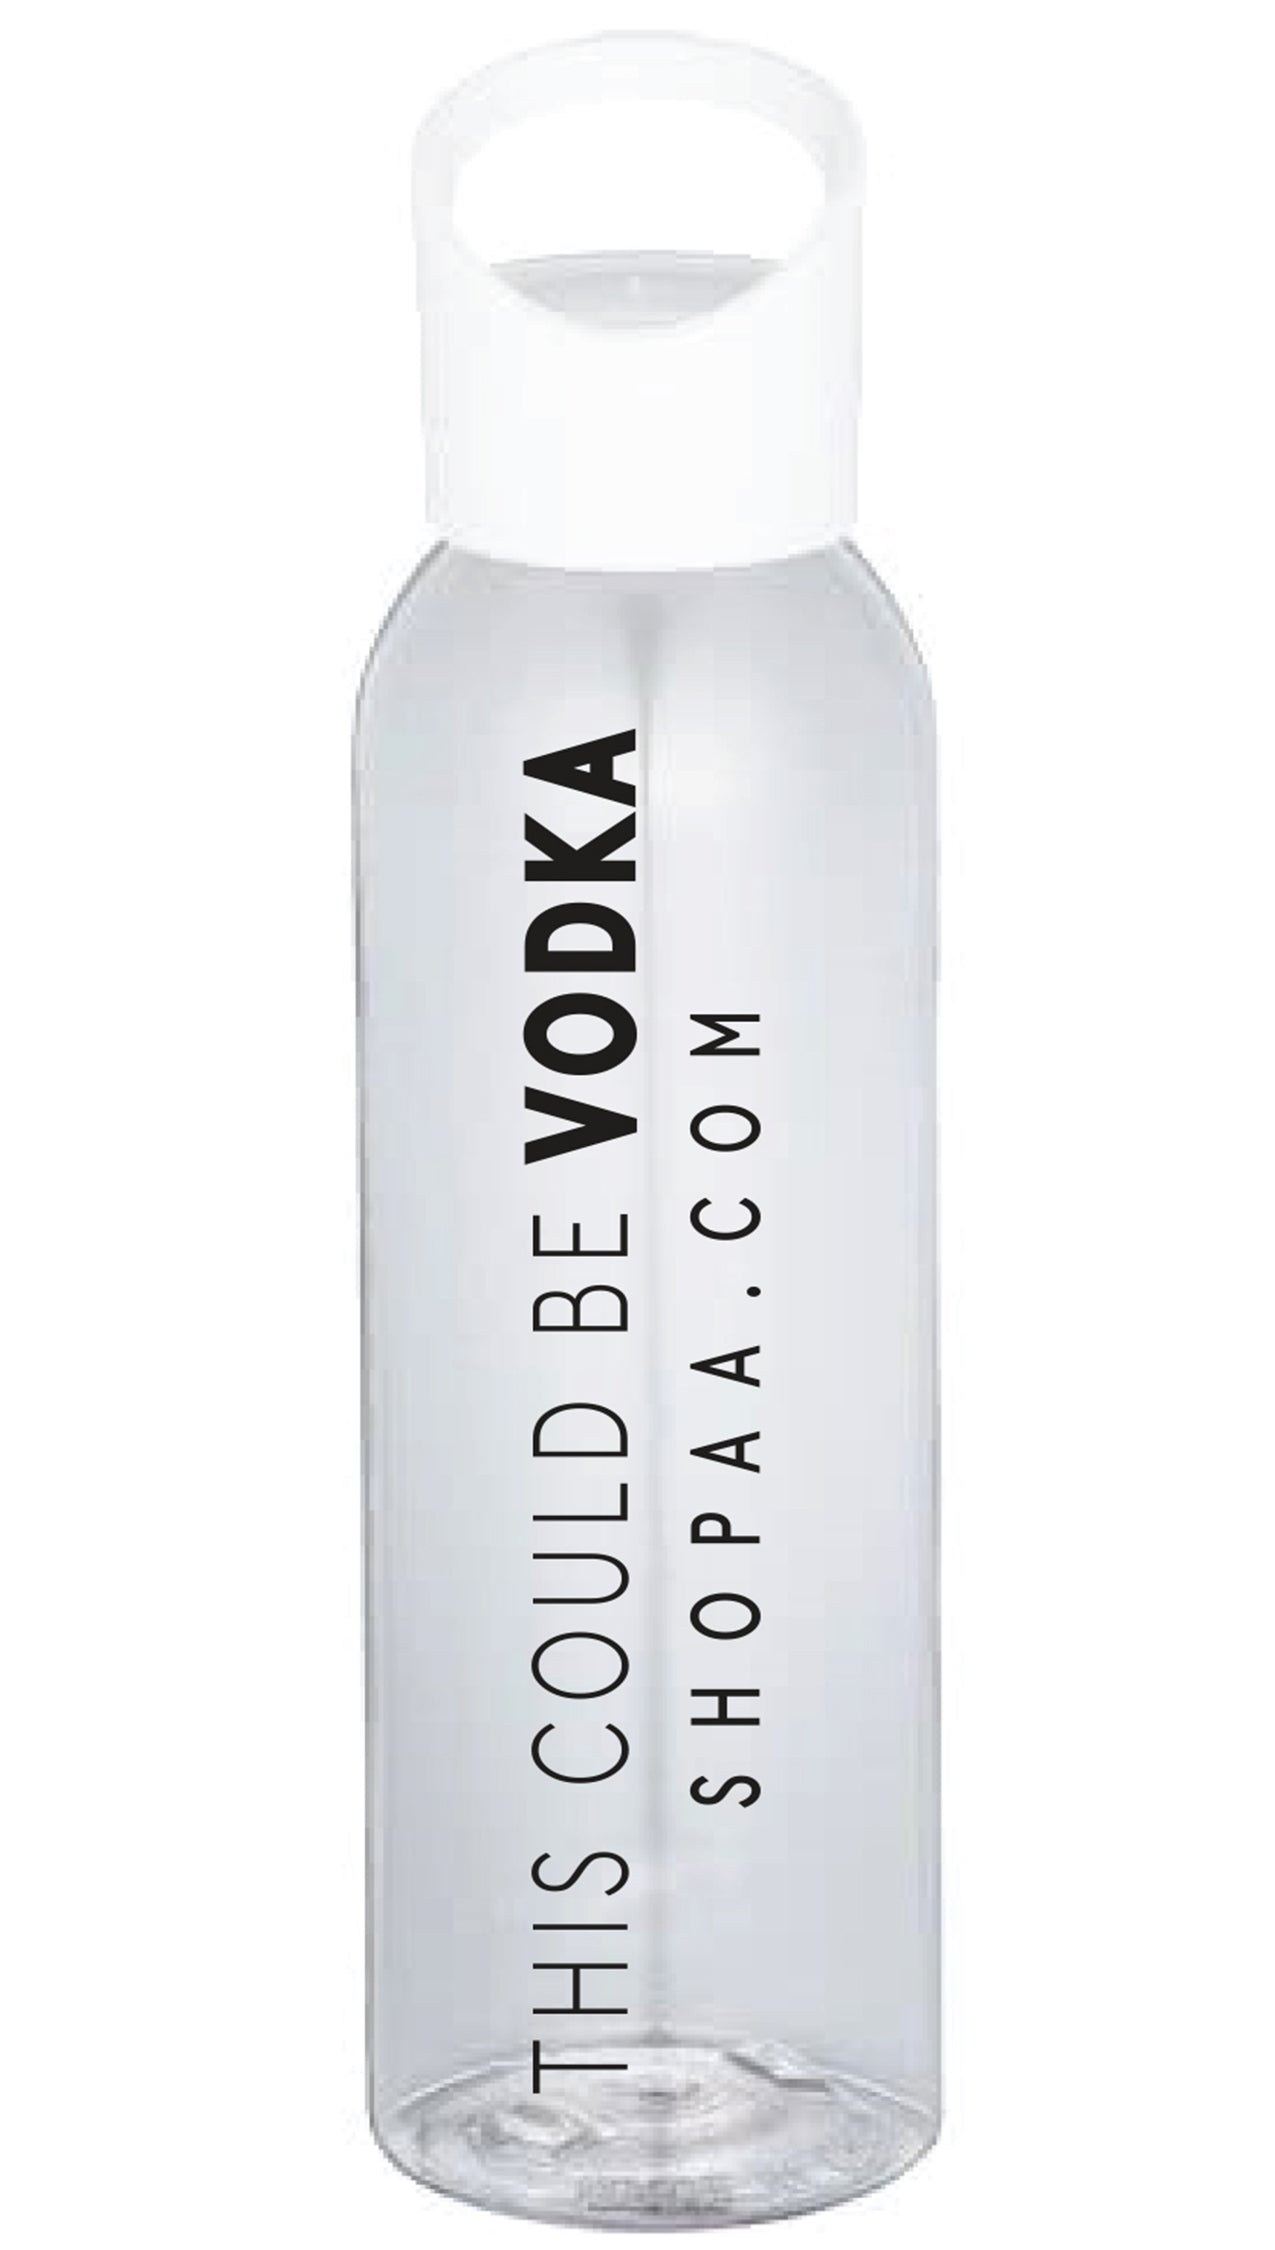 this could be vodka clear water bottle